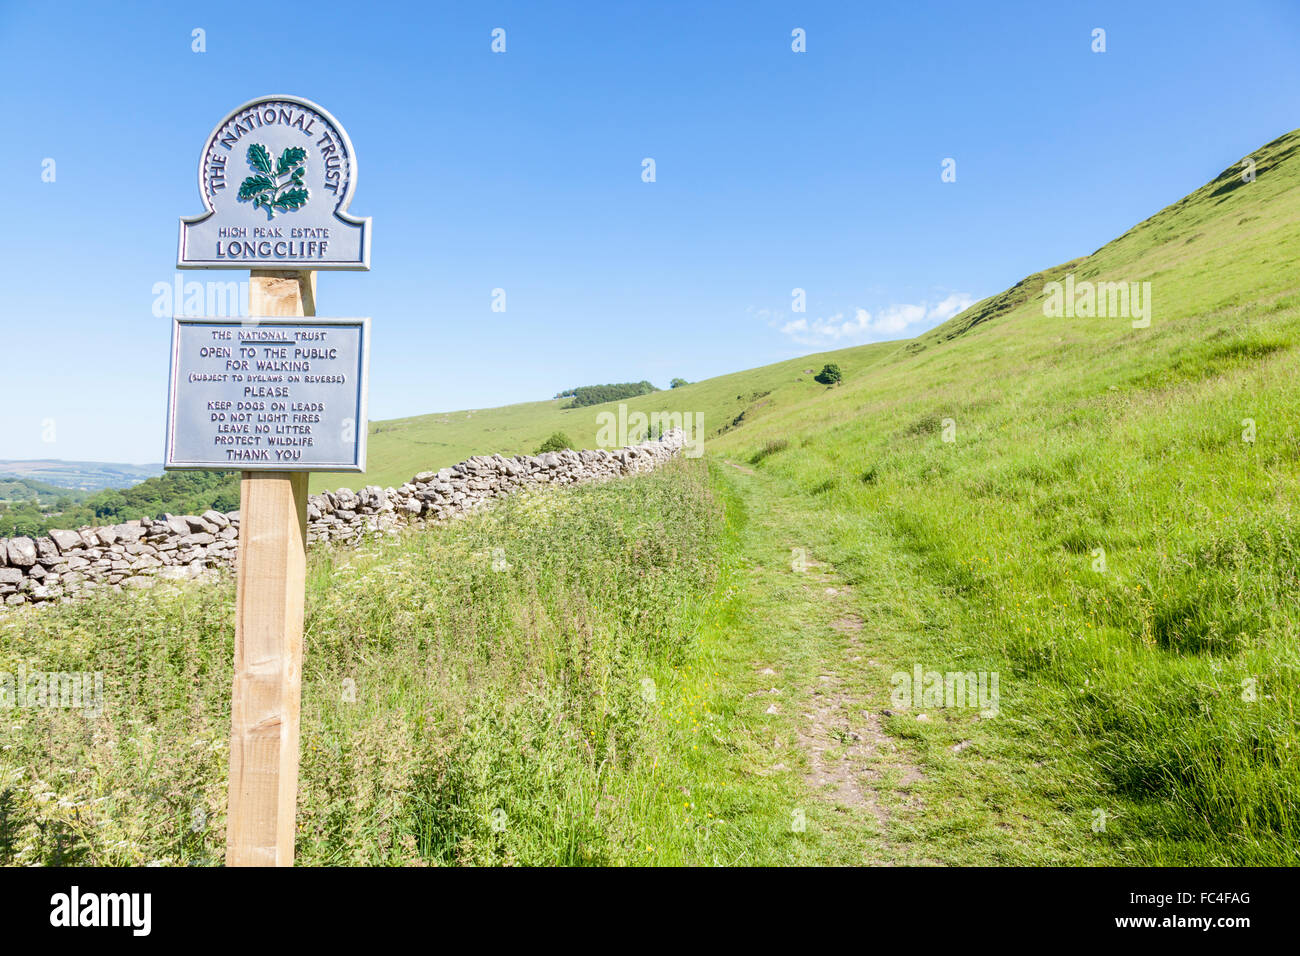 Public footpath for walkers at Long Cliff near Castleton, part of the National Trust High Peak Estate, Derbyshire, - Stock Image